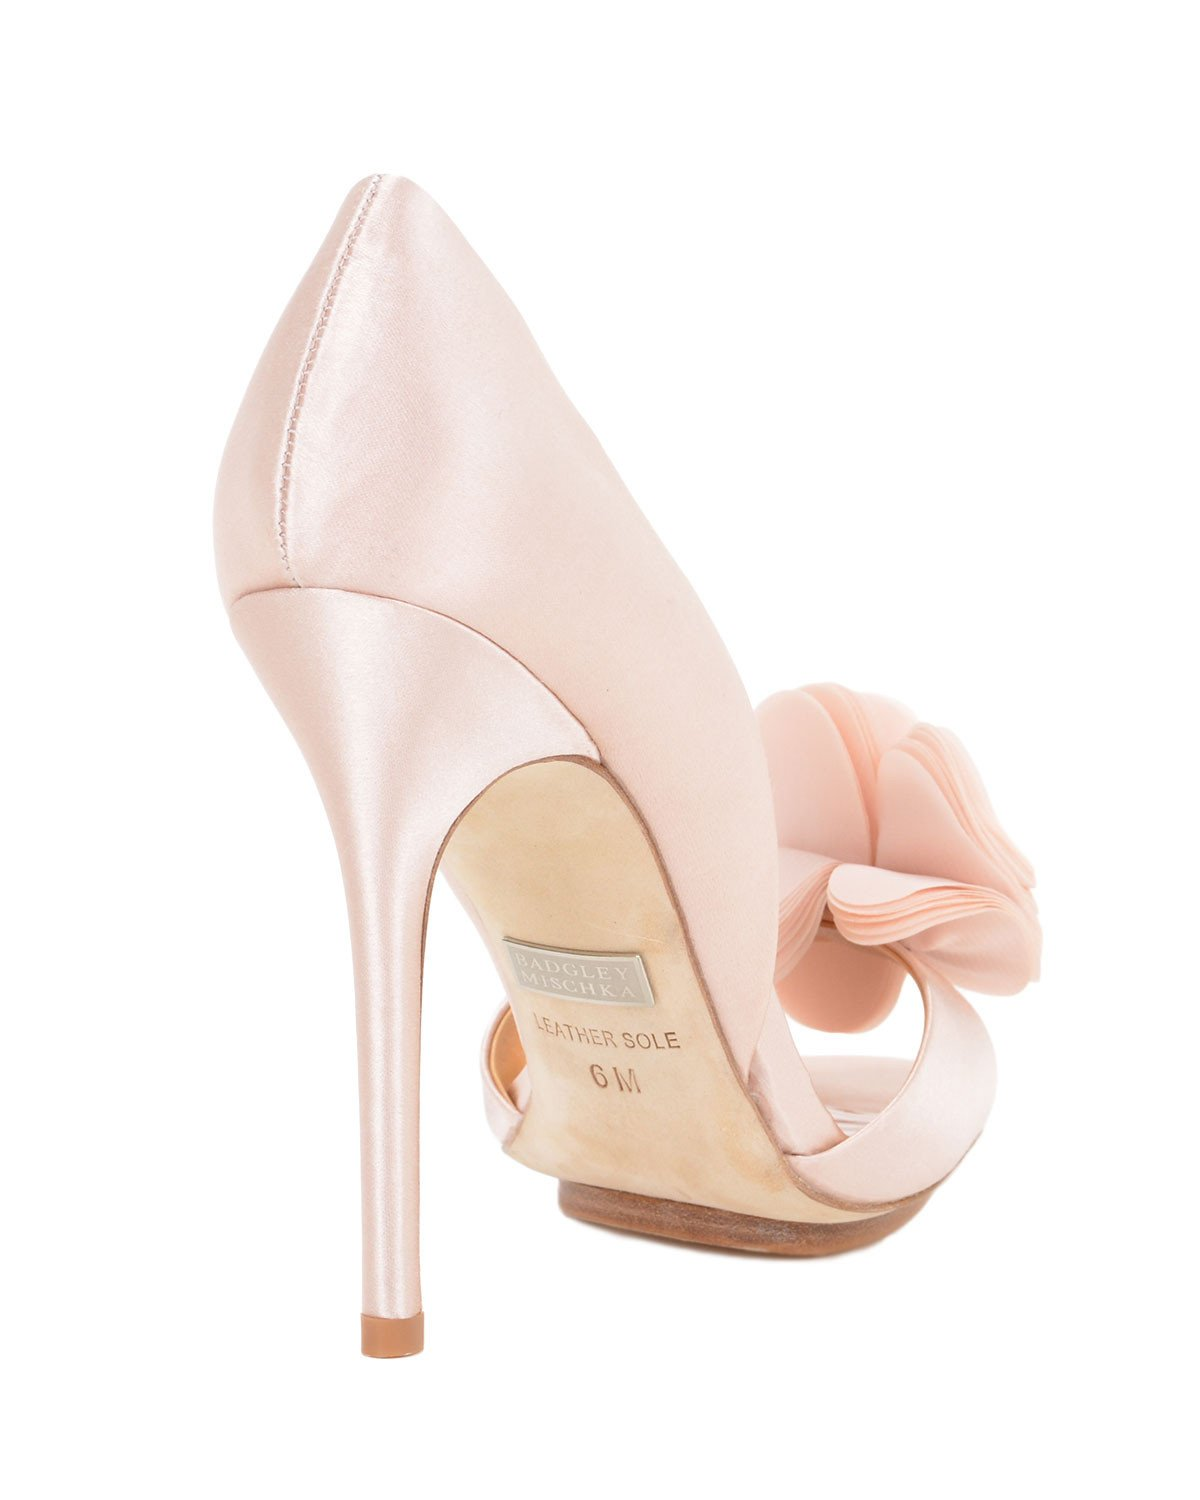 Badgley Mischka - Blossom - Pink - Bridal Shoes Sydney